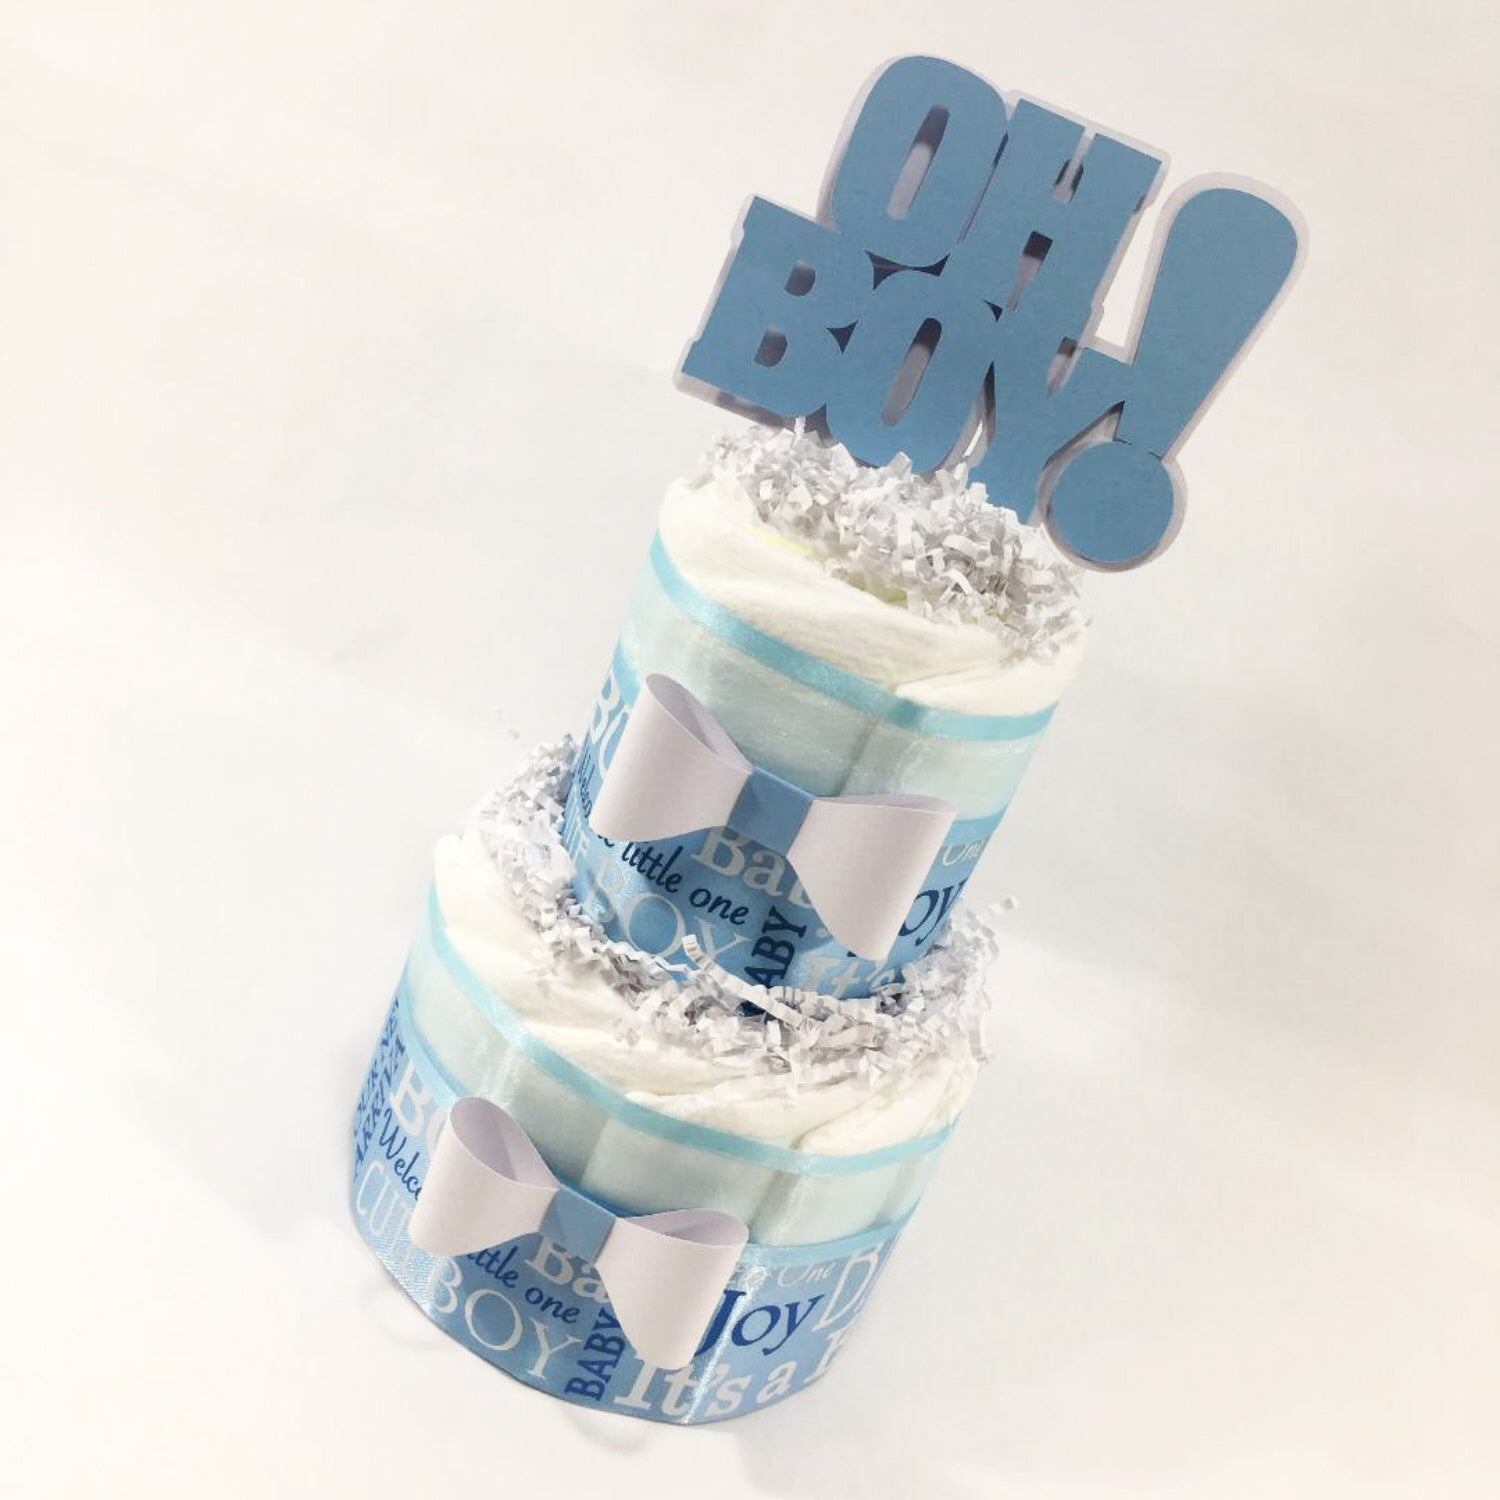 Oh Boy 2-Tier Diaper Cake Centerpiece - Blue, White